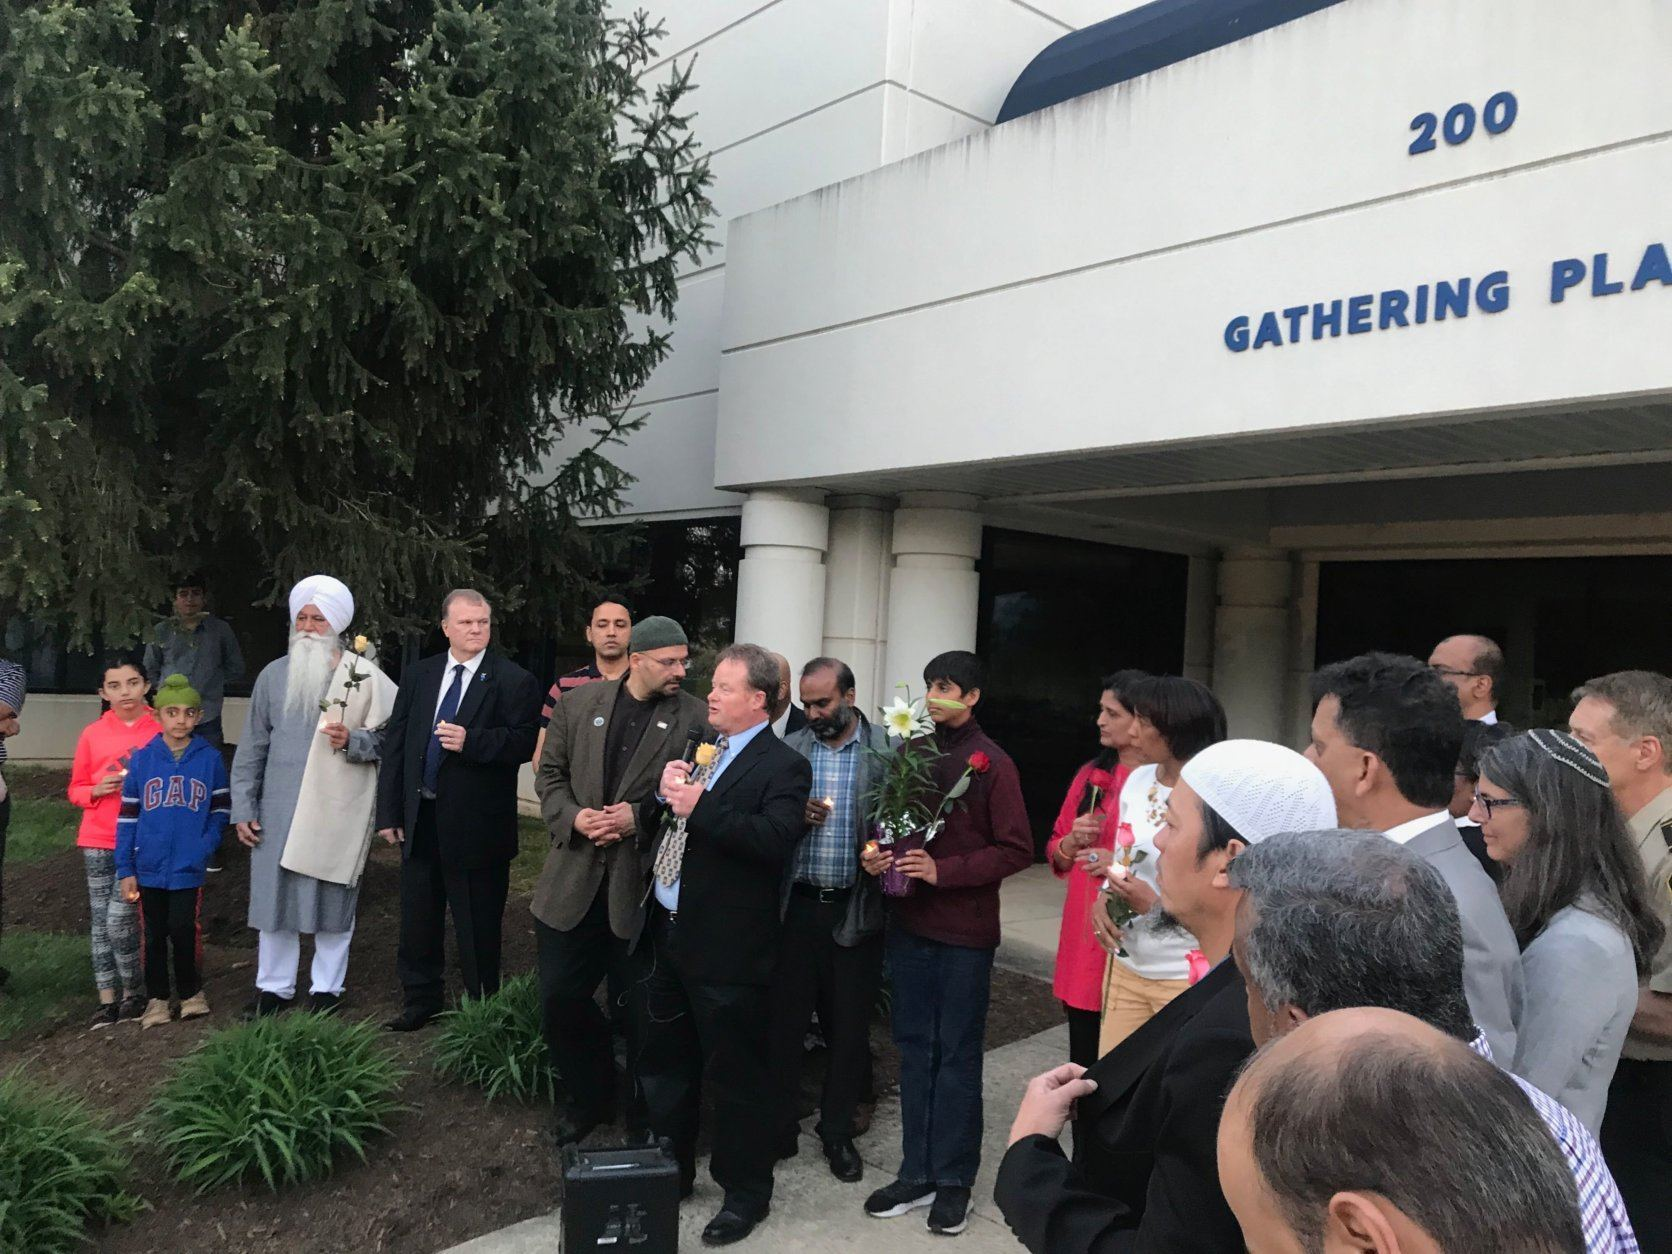 """Our thoughts, our prayers are with the Sri Lanka community, the Christian community and all faiths in Sri Lanka,"" said Rizwan Jaka, chair of the board of the All Dulles Area Muslim Society. (WTOP/Dick Uliano)"